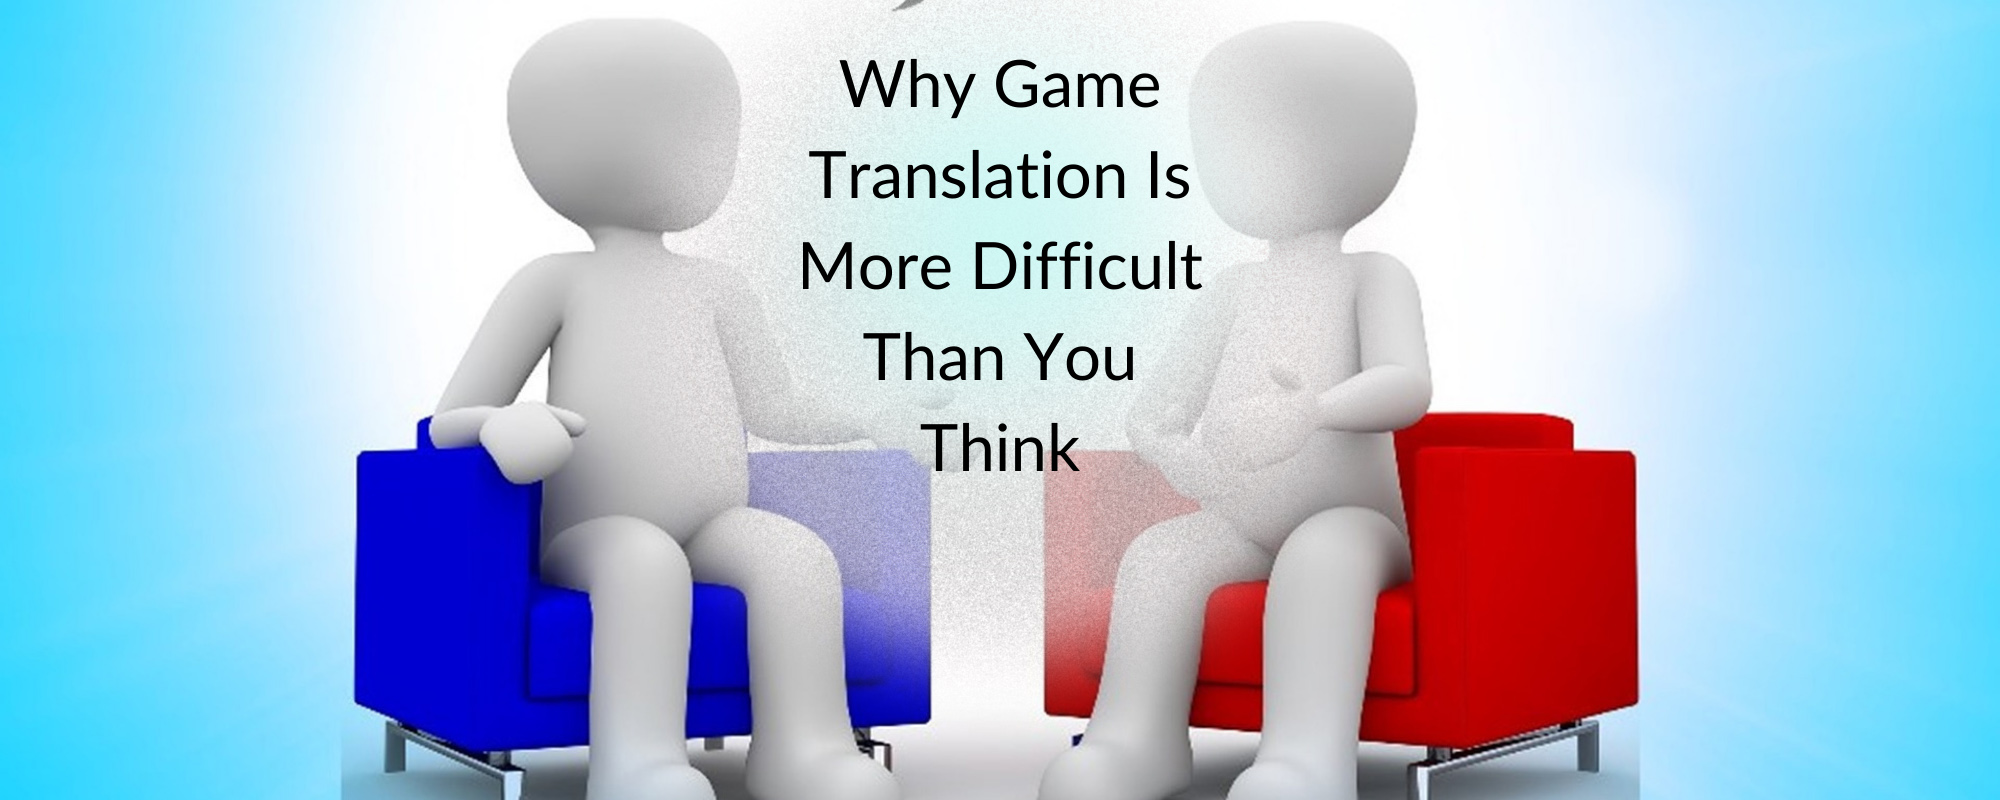 Why Game Translation Is More Difficult Than You Think